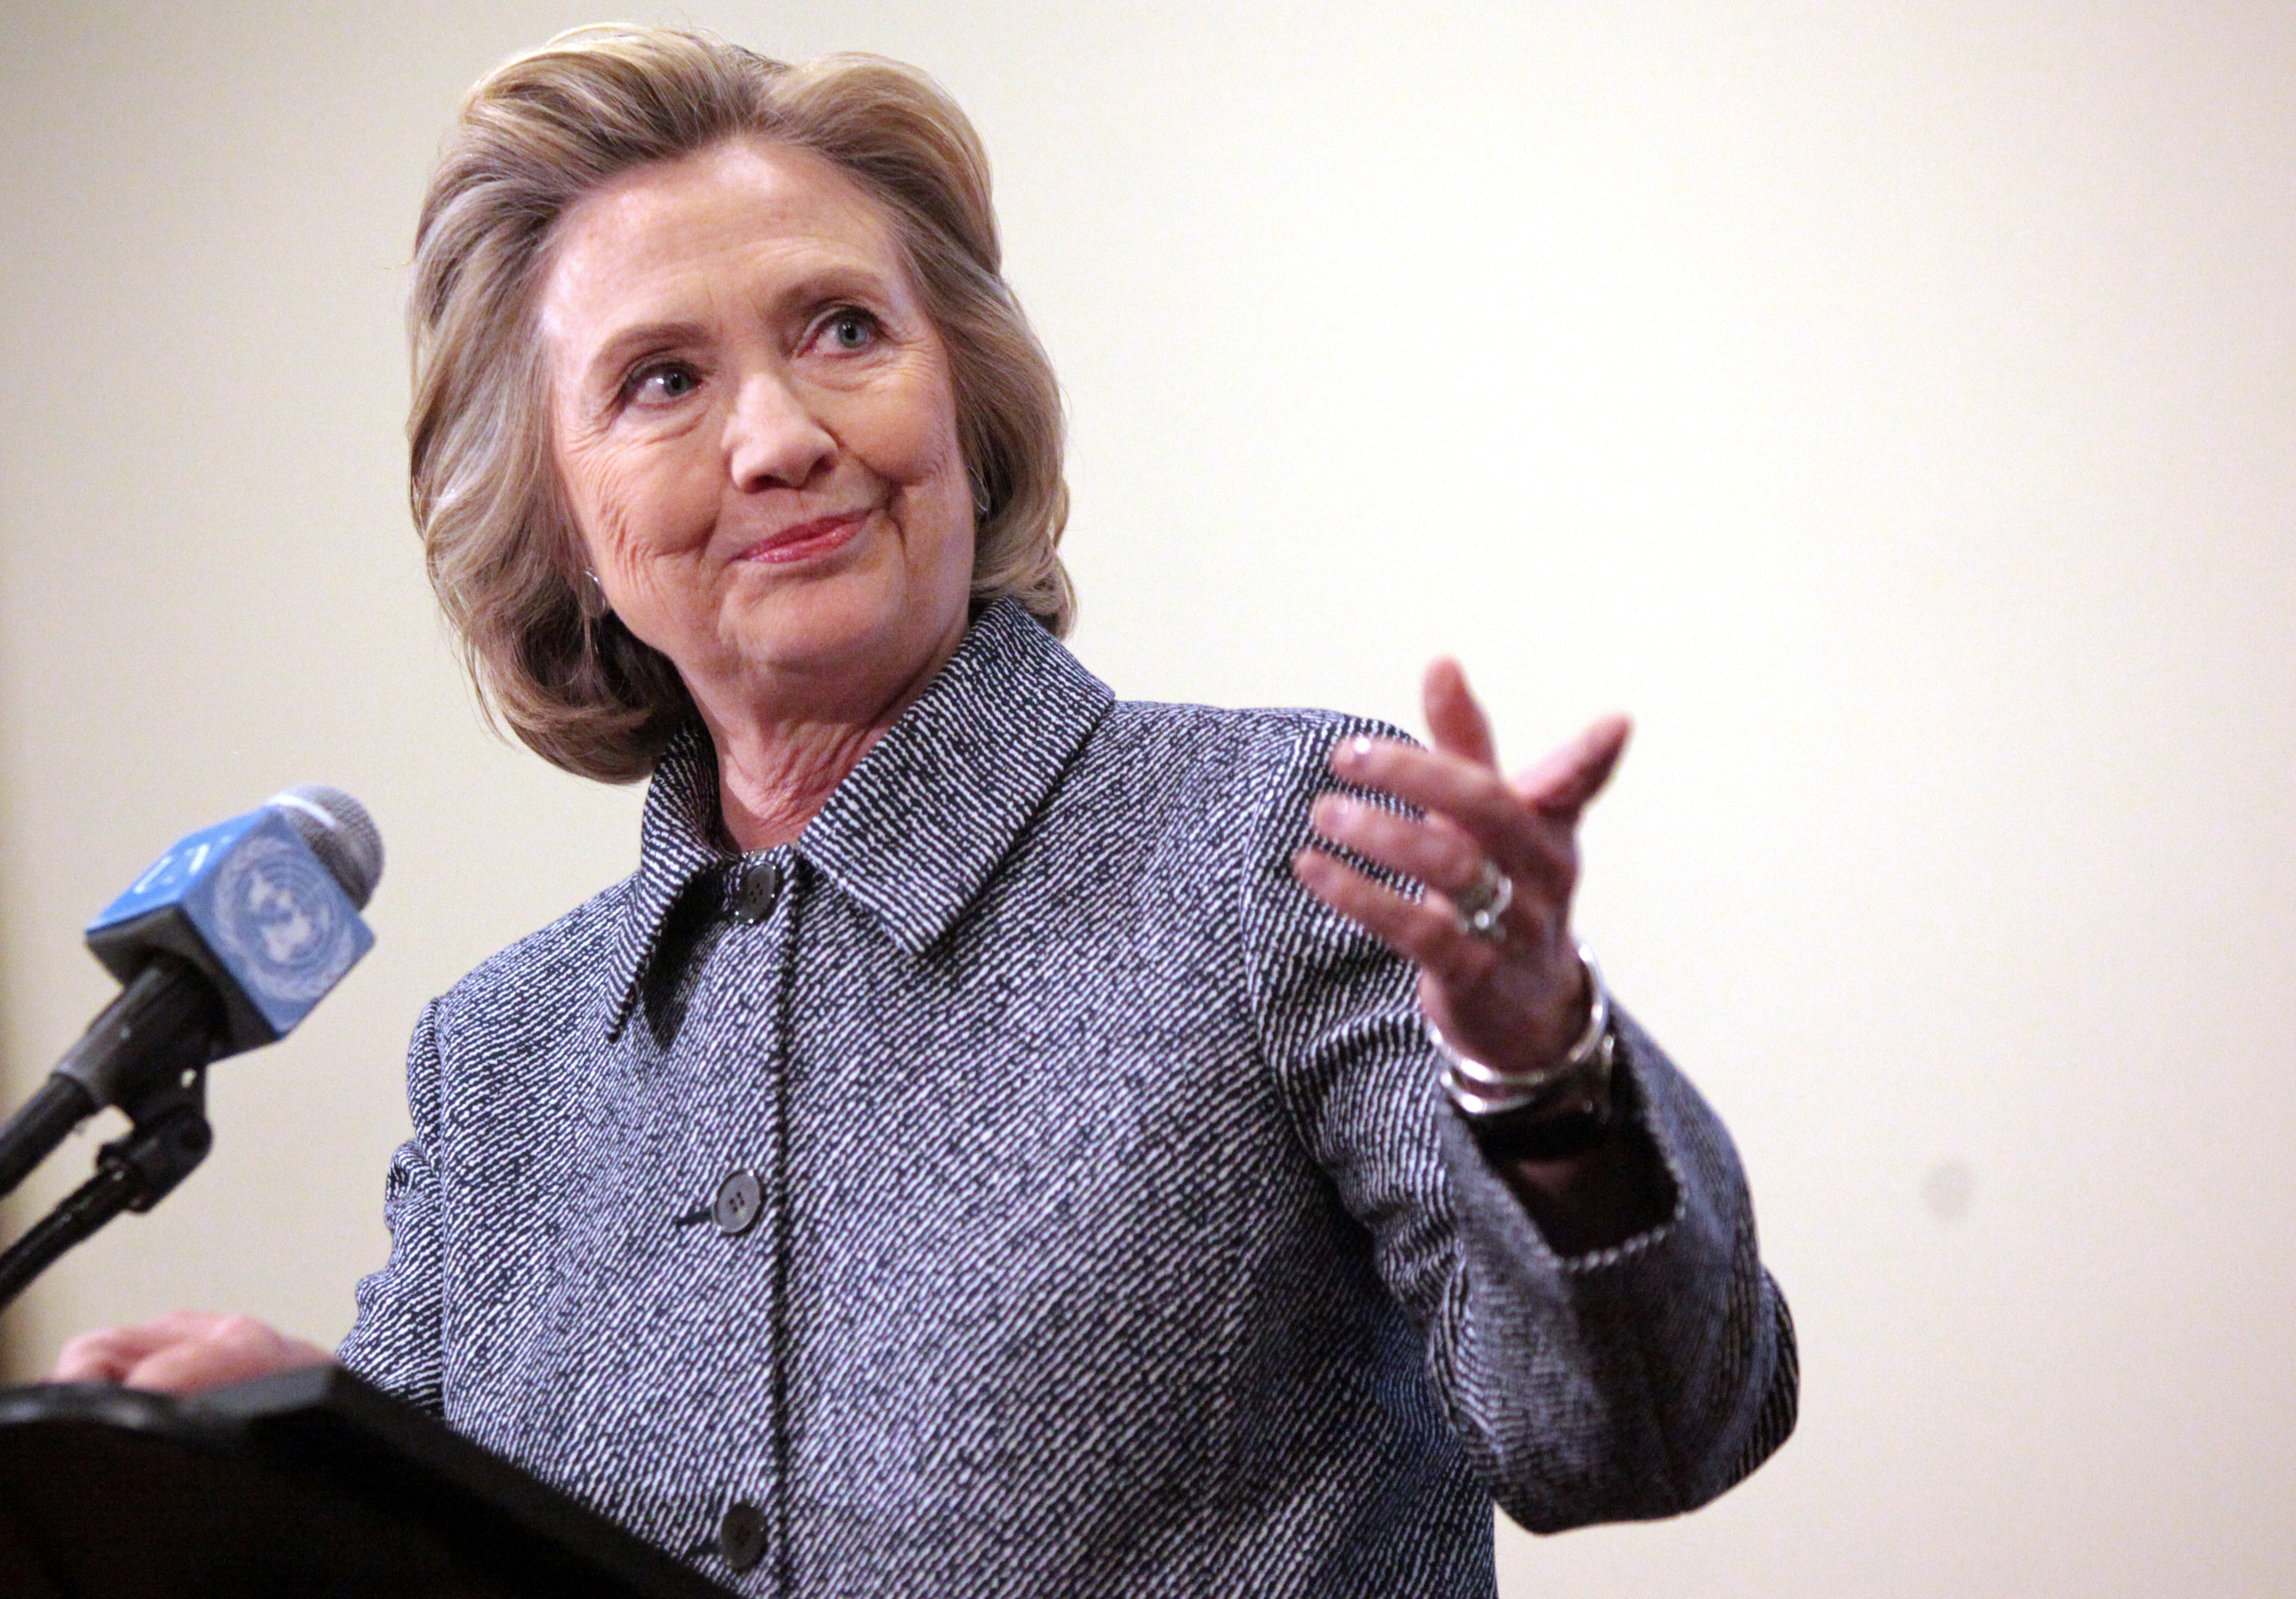 Former Secretary of State Hillary Clinton speaks to the media after keynoting a Women's Empowerment Event at the United Nations on March 10, 2015 in New York City. Clinton answered questions about recent allegations of an improperly used